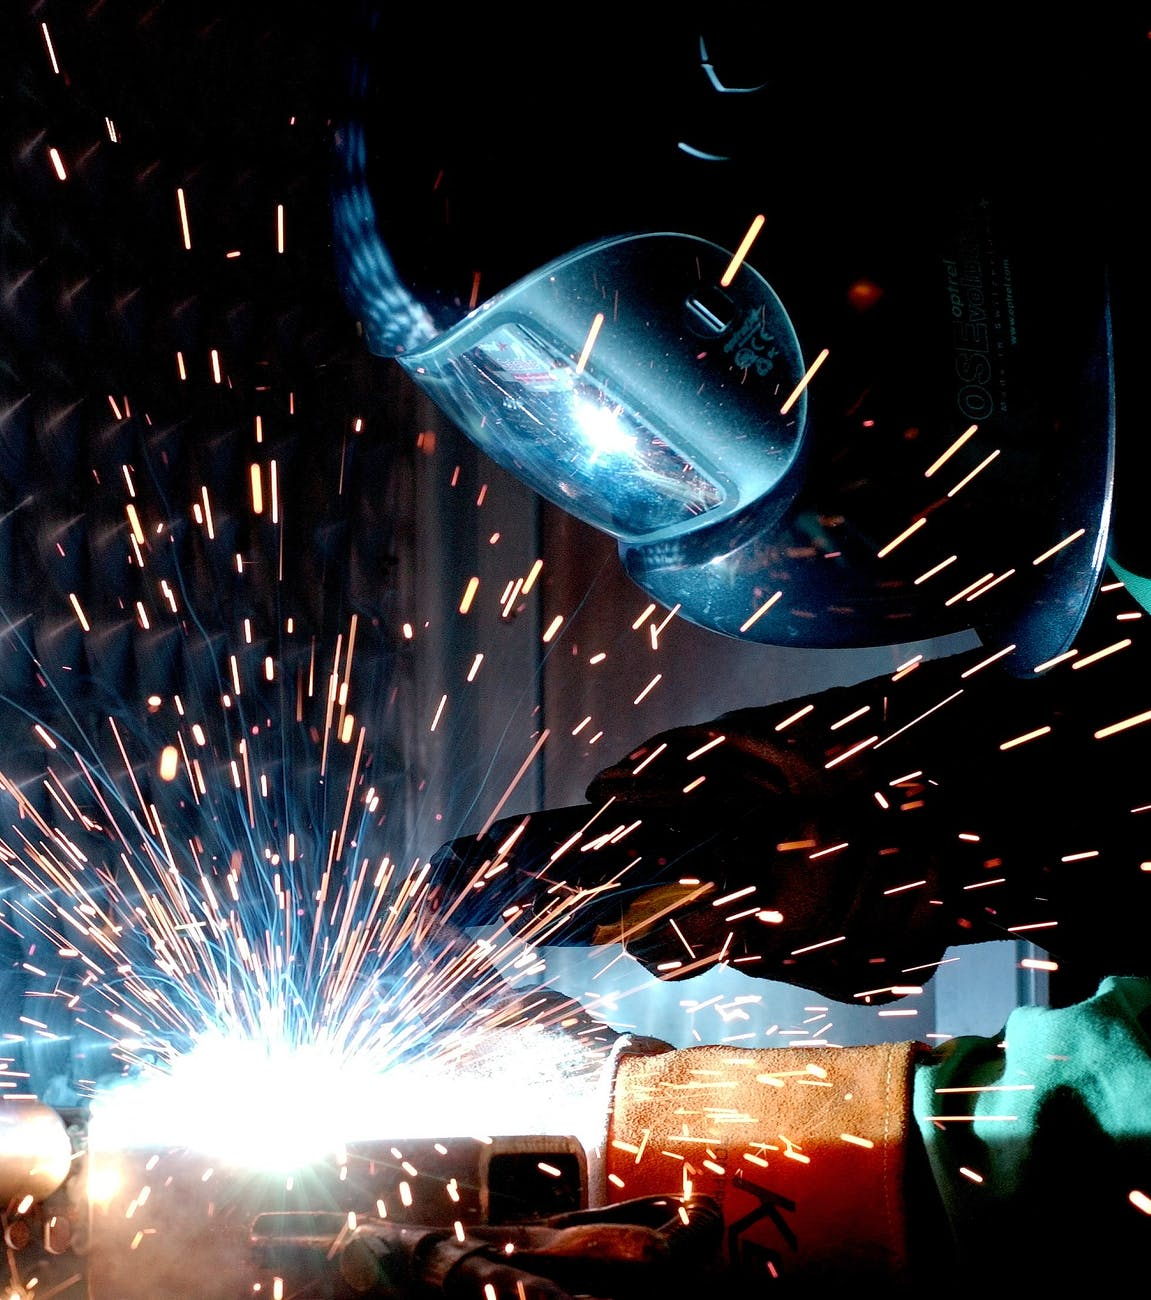 A welder surrounded by sparks